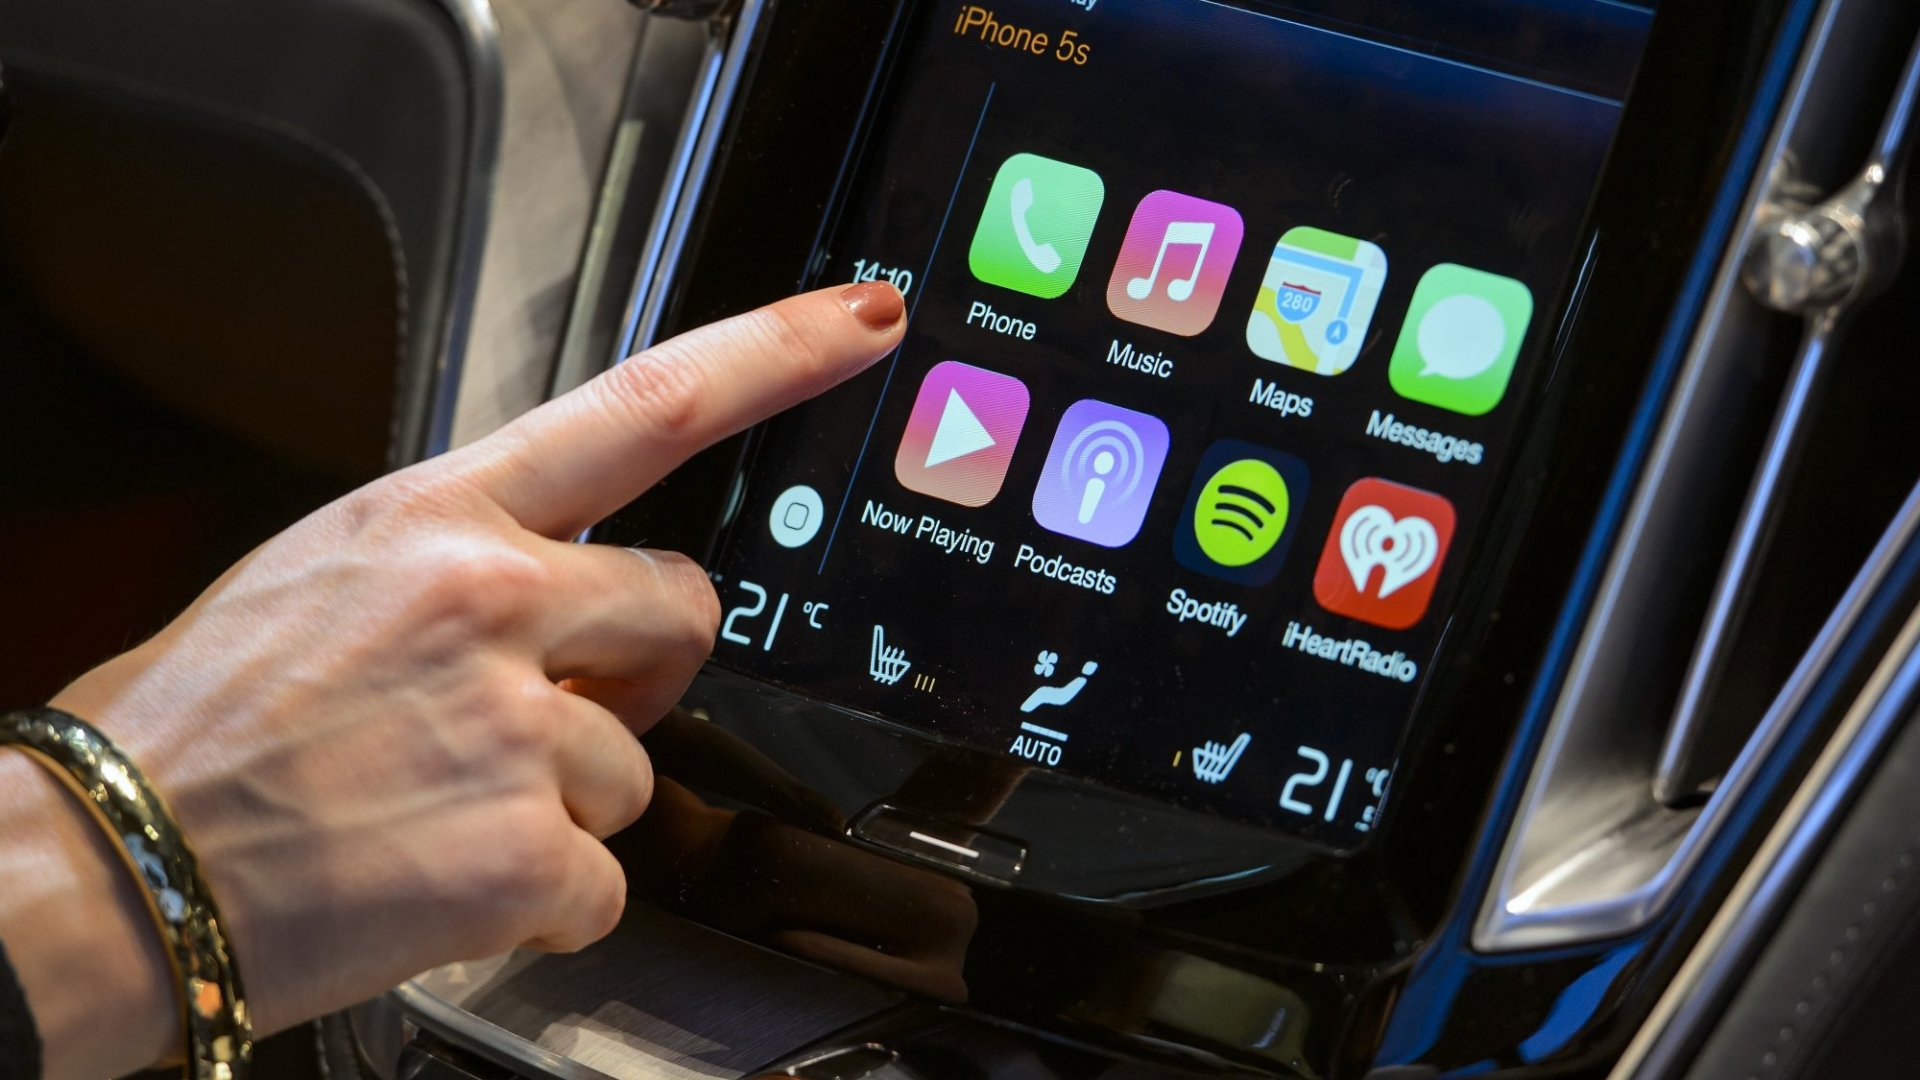 Apple and Google Bring Smartphone Functions to Car Dashboards